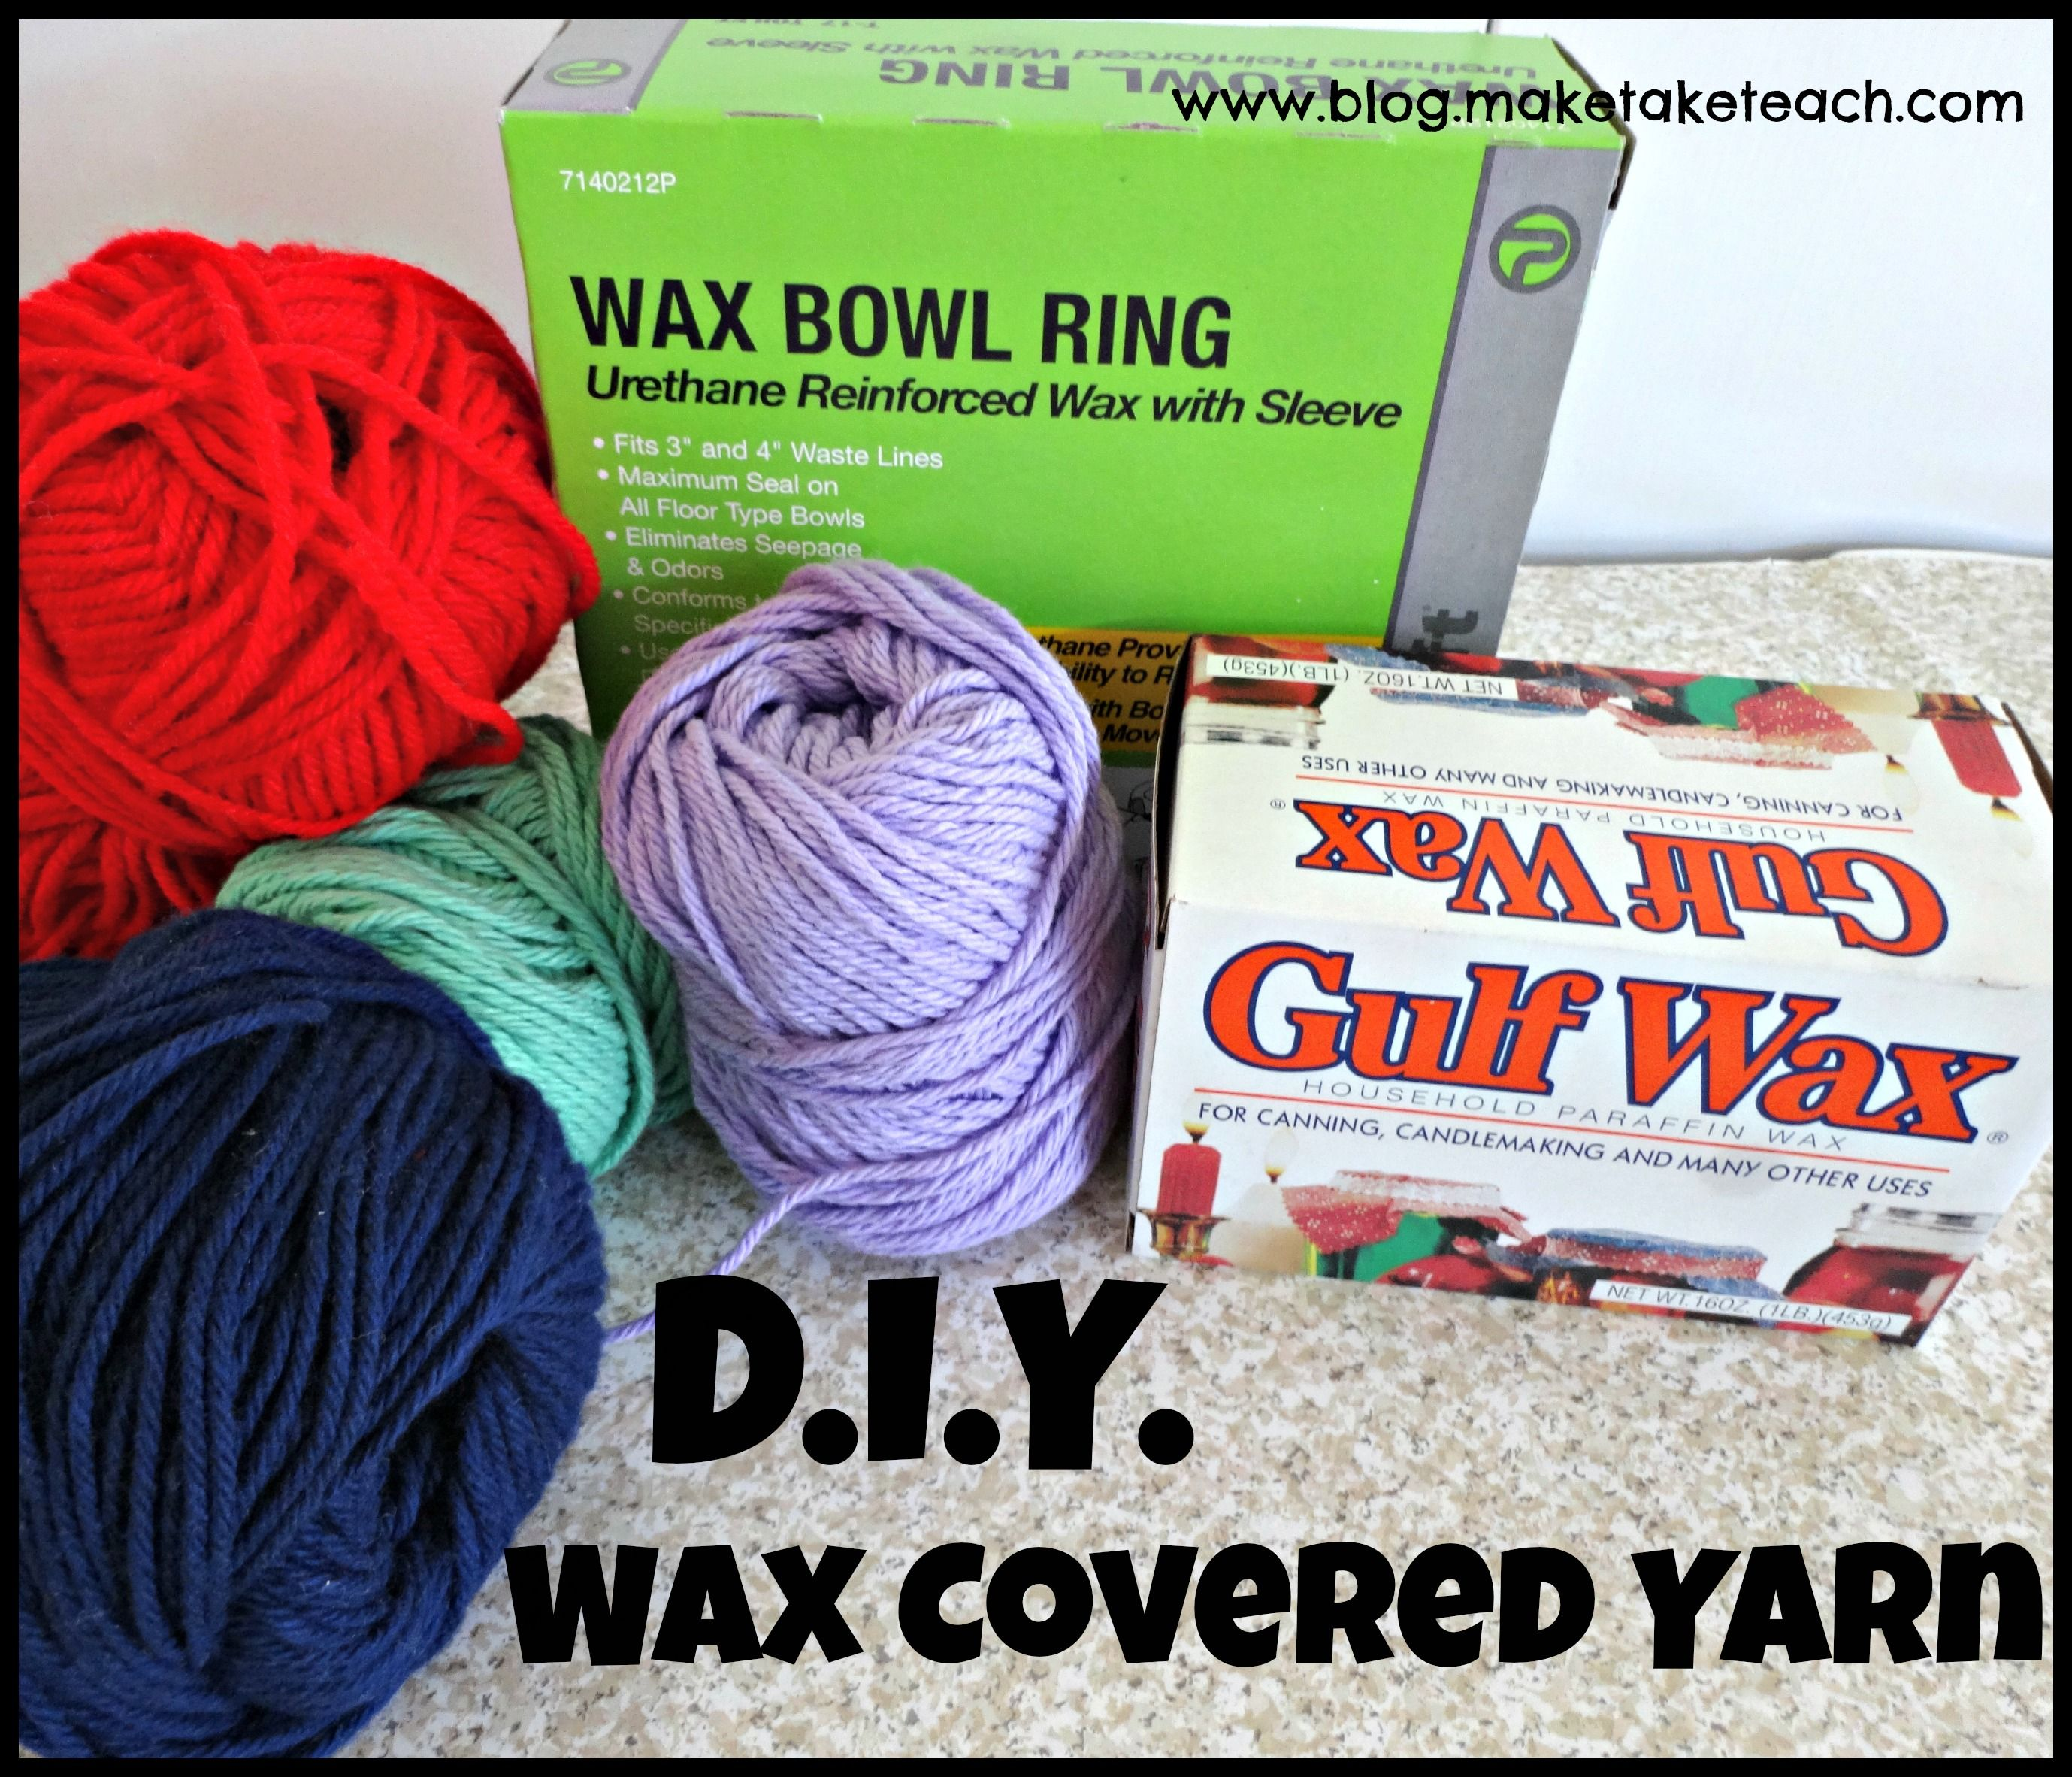 D.I.Y. Wax Covered Yarn- make your own wiki sticks! Great idea ...